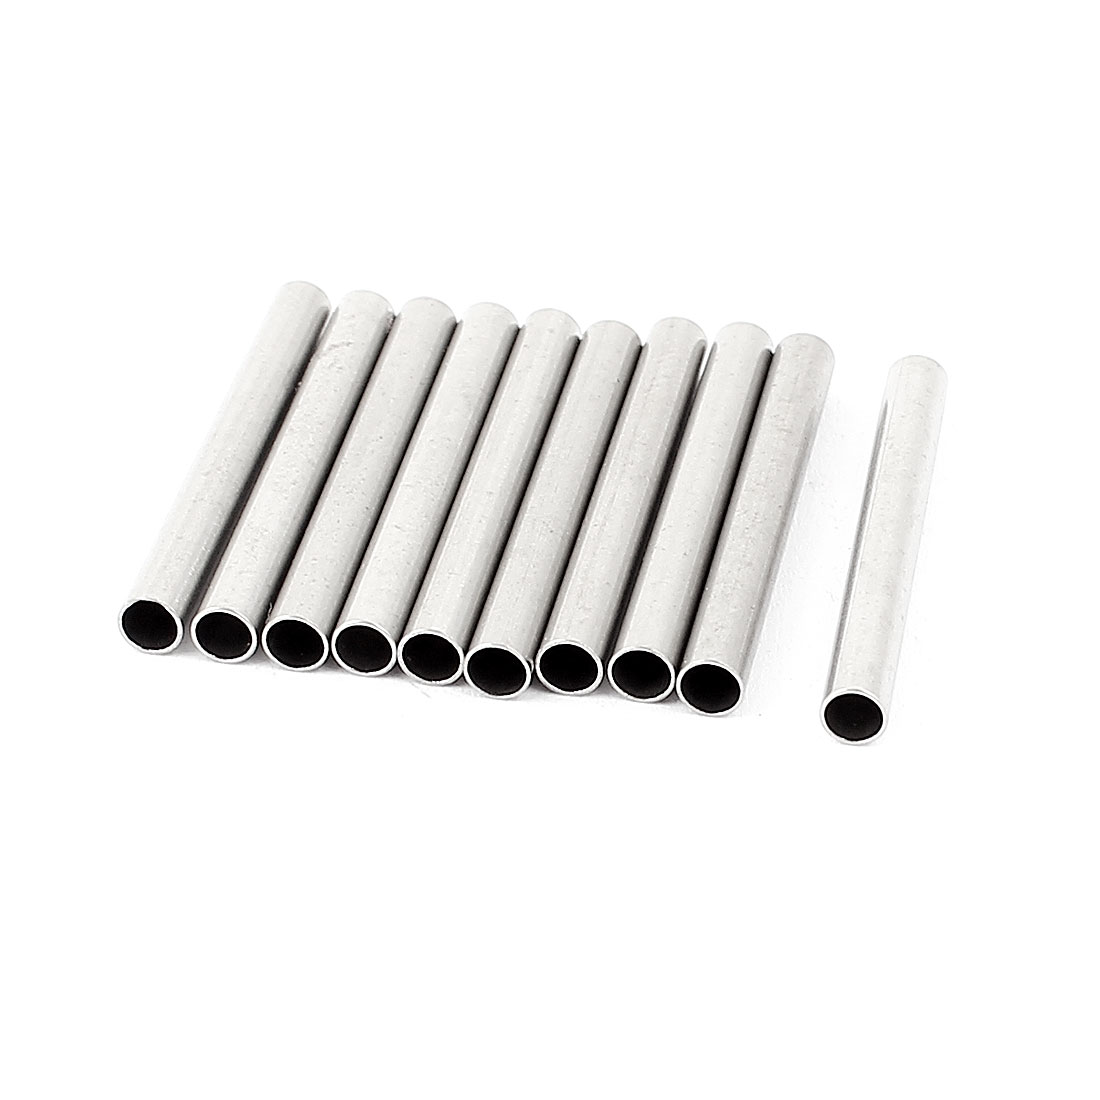 10 Pcs 3mmx26.7mm Metal Solid Hollow Round Rod Bar for DIY RC Model Car